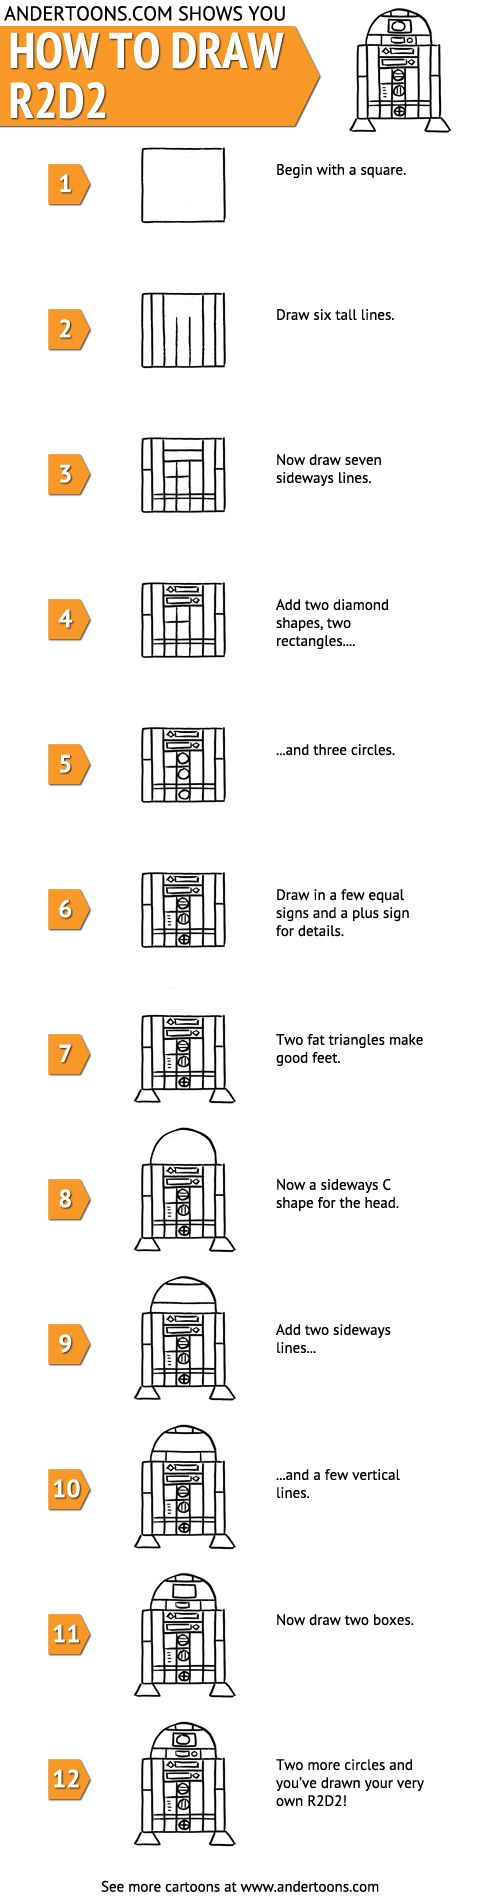 How to Draw R2-D2